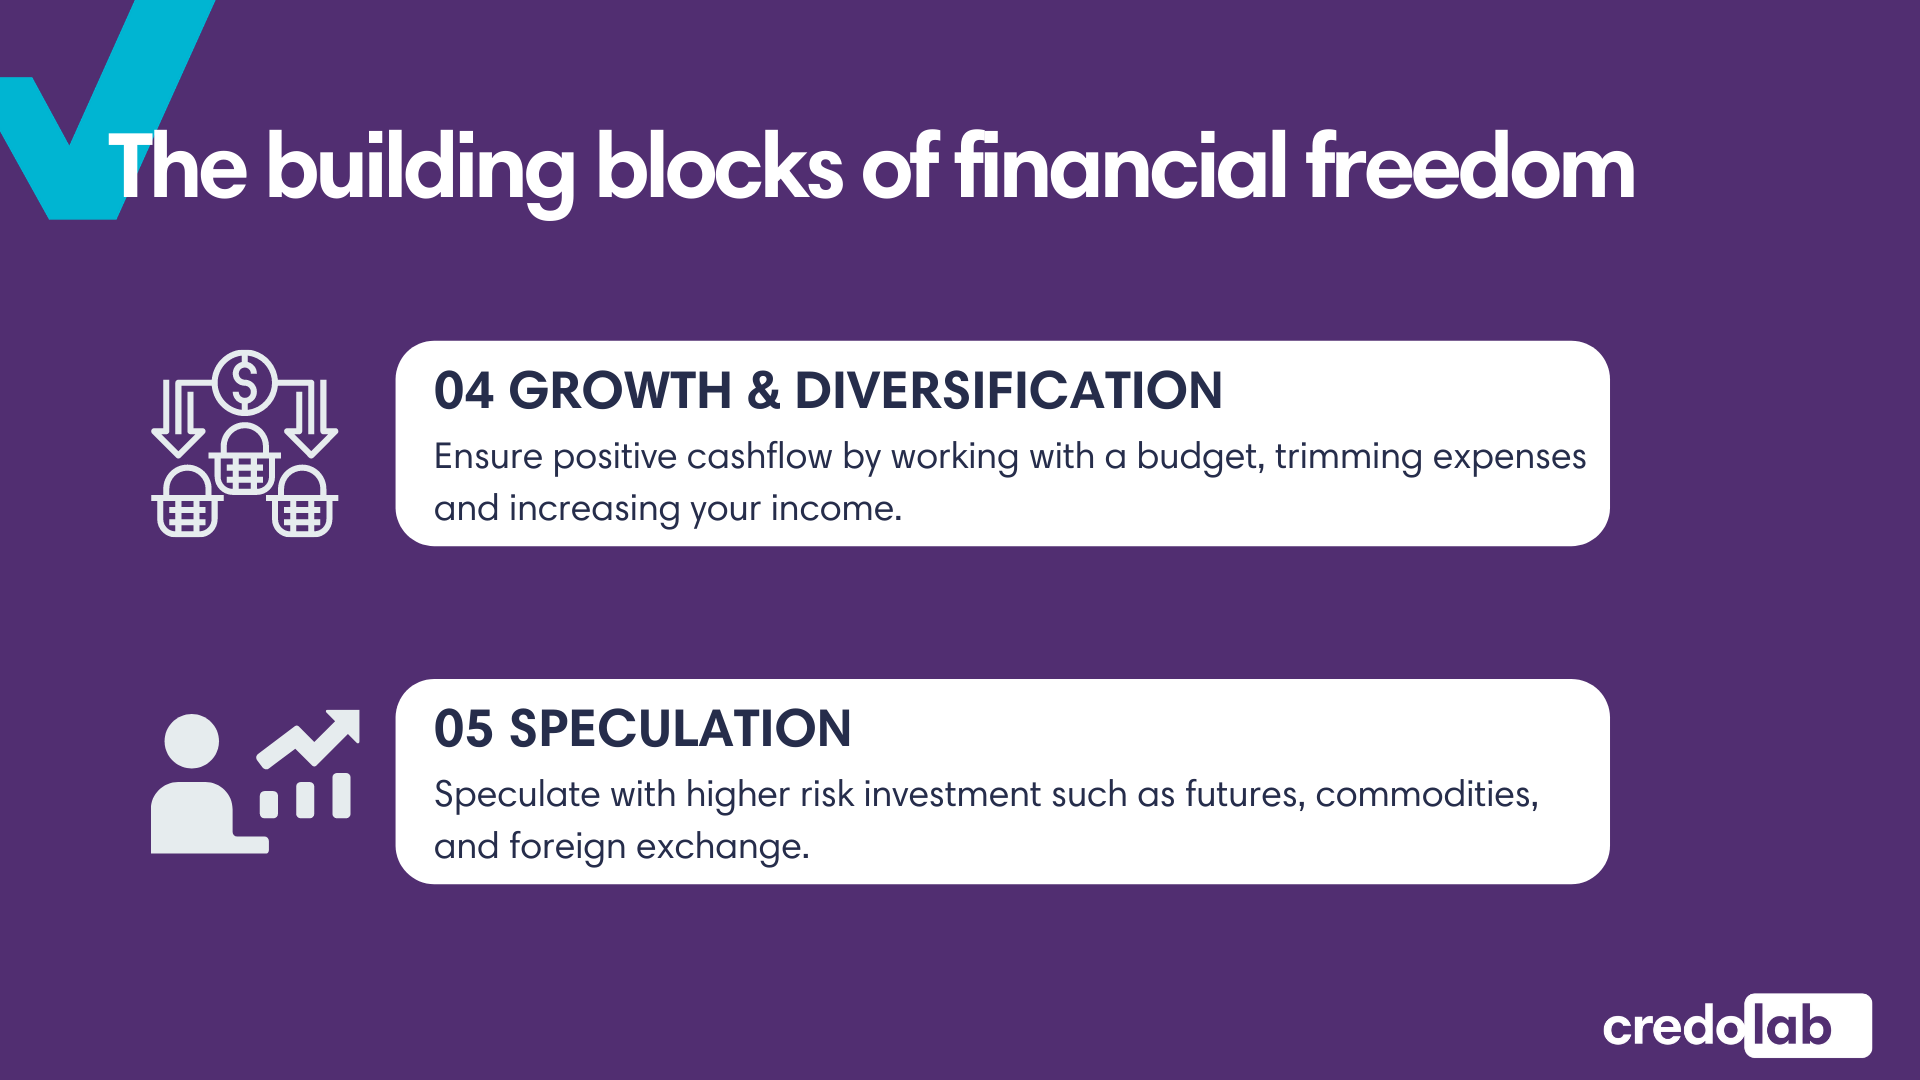 Credolab - Infographic: The building blocks of financial freedom